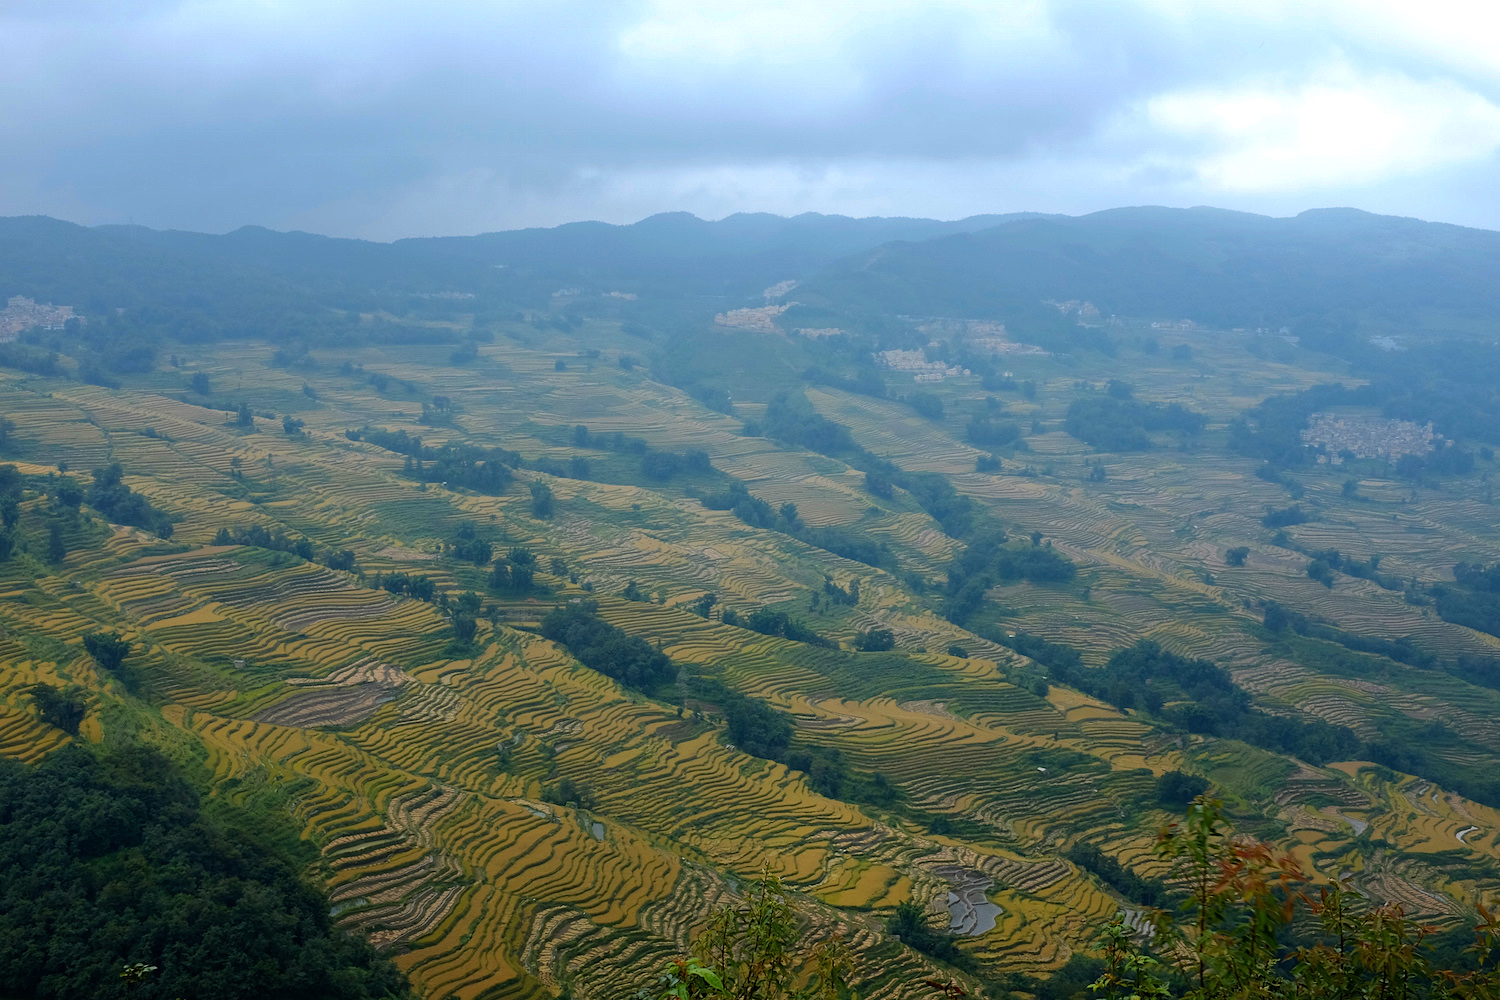 The rice terraces at harvest time